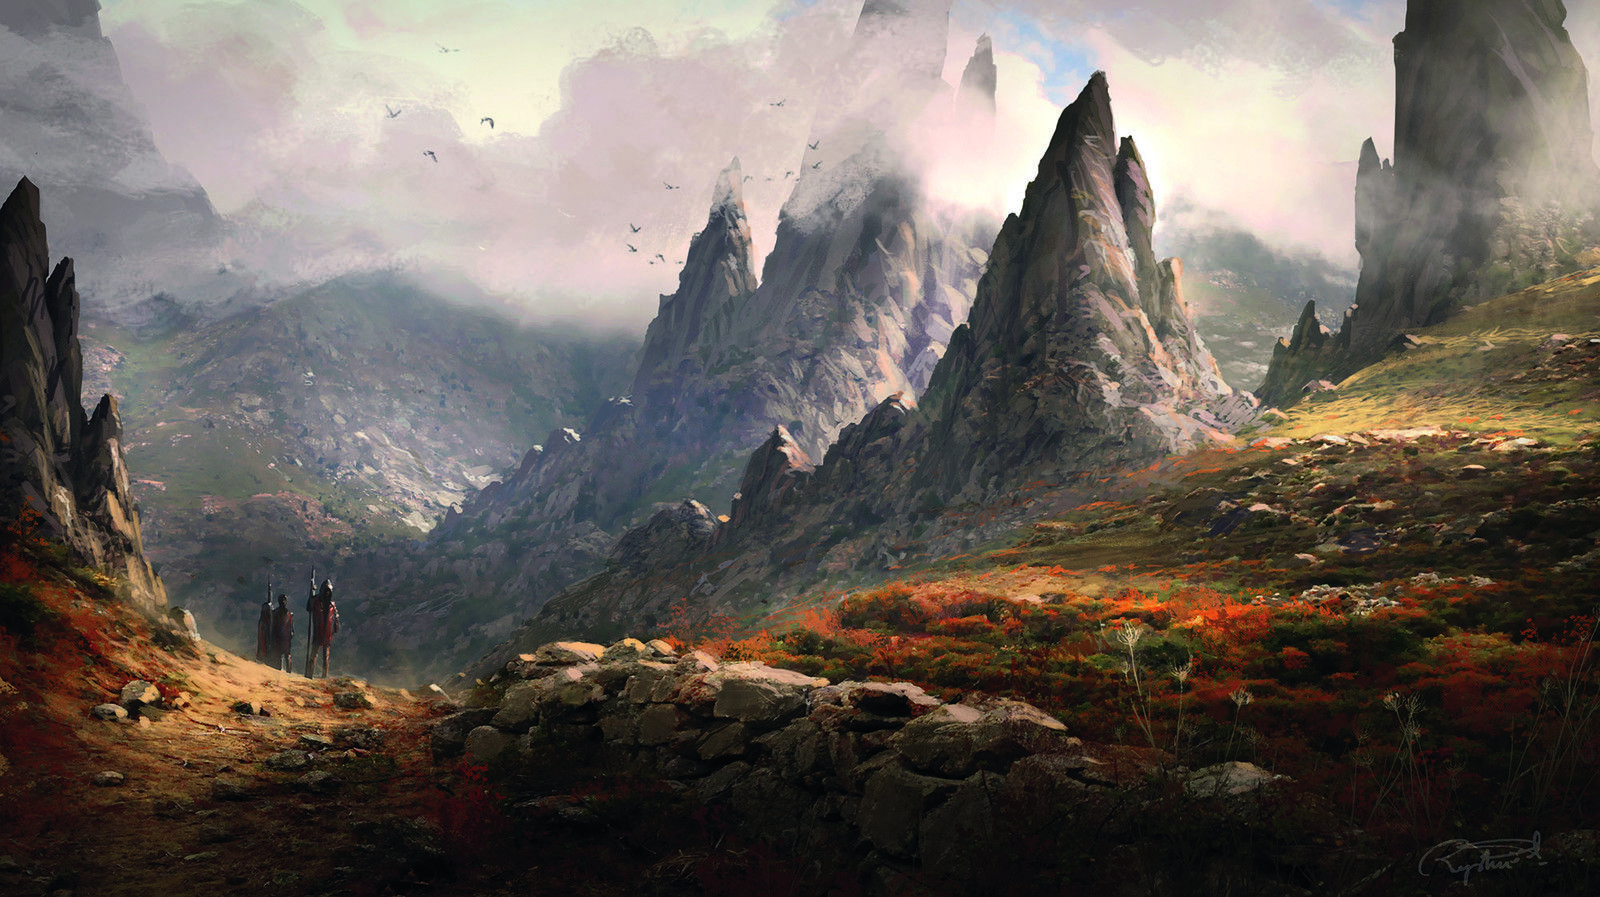 13+ Raphael lacoste ideas in 2021